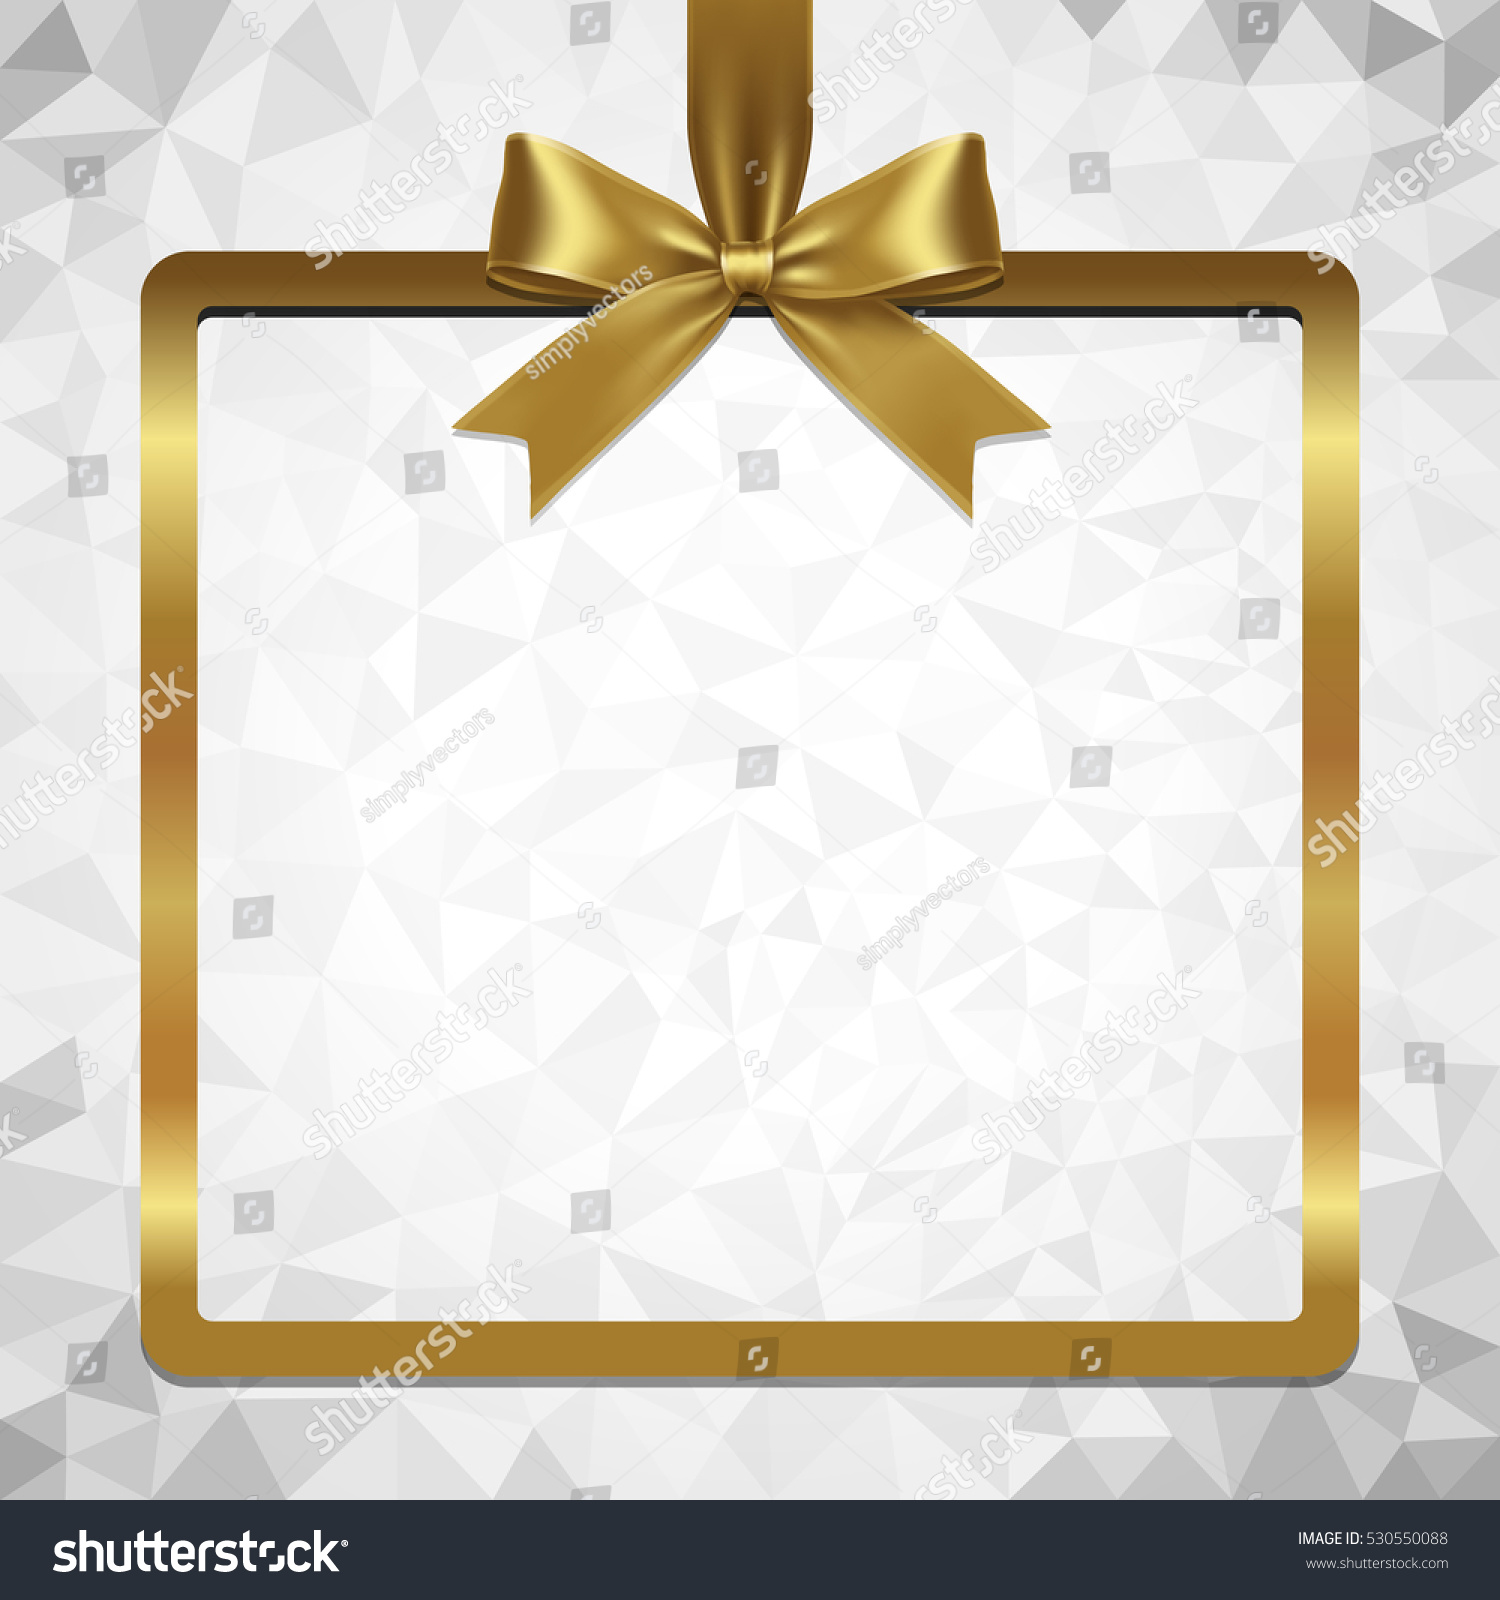 gold ribbon bow and hanged square frame vector with abstract polygonal background